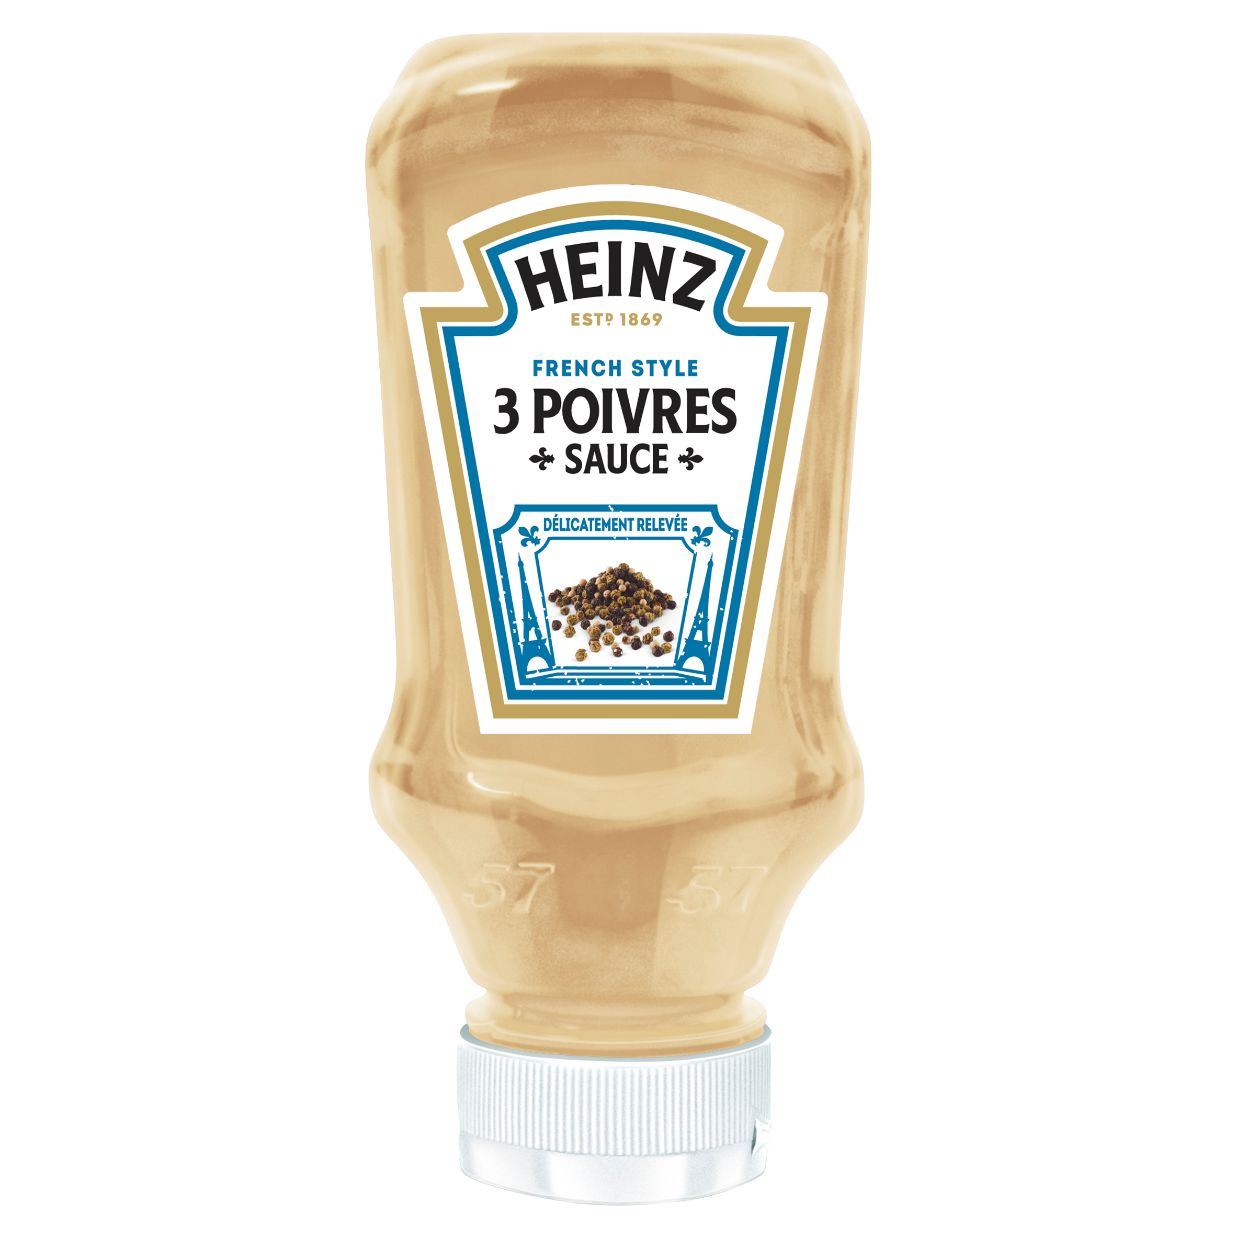 Heinz Sauce poivres 220ml Flacon Souple Top Down image